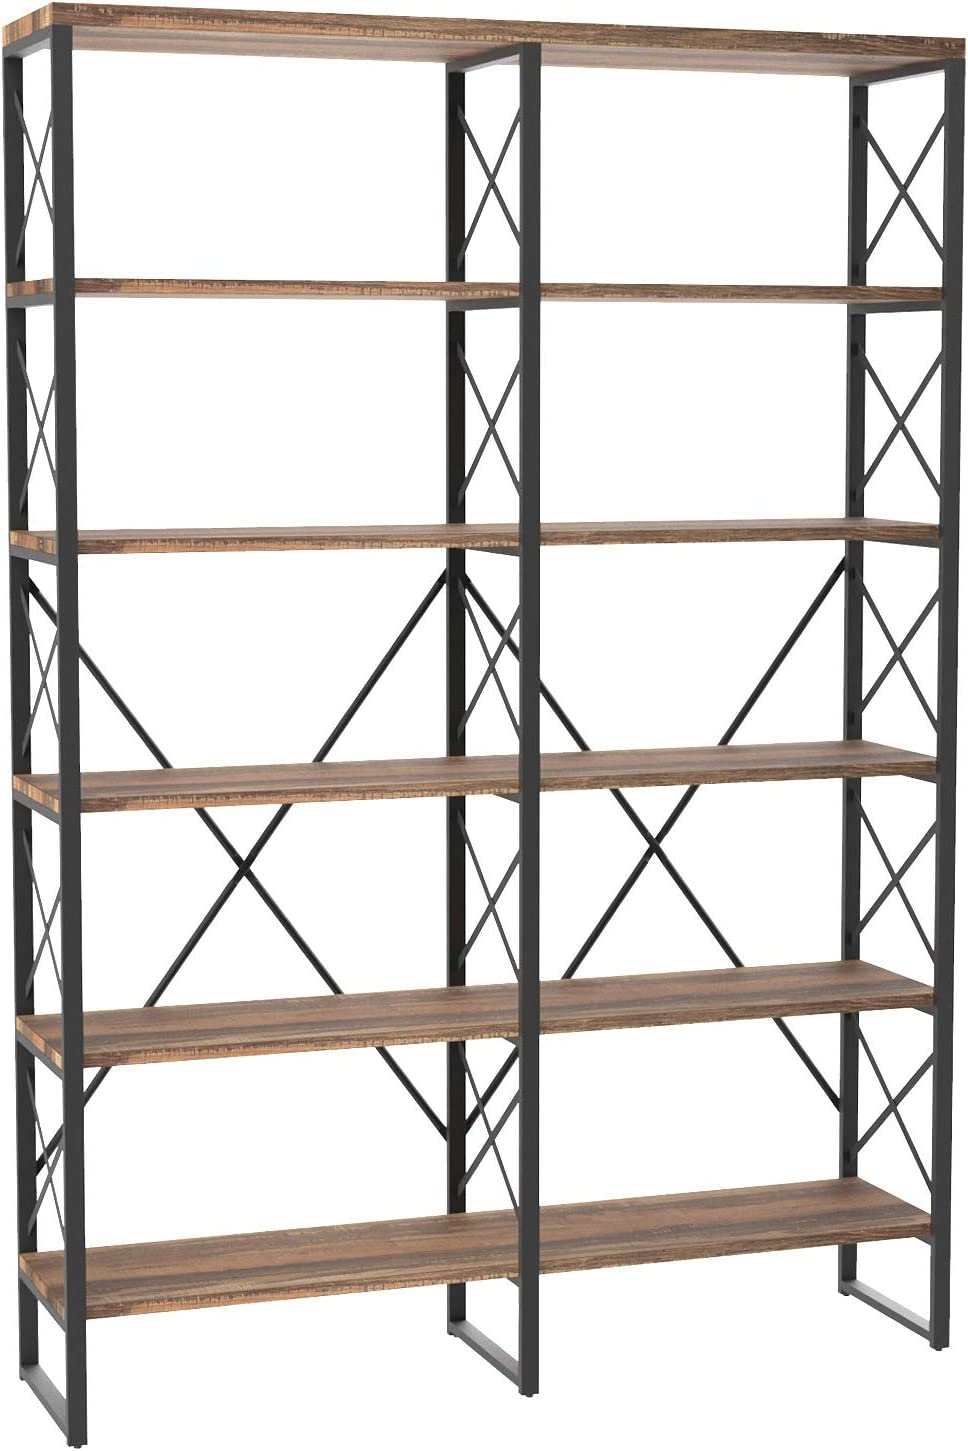 "IRONCK Bookshelf Double Wide 6-Tier 76"" H, Open Large Bookcase, Industrial Style Shelves, Wood and Metal Bookshelves for Home Office, Easy Assembly, Vintage Brown"